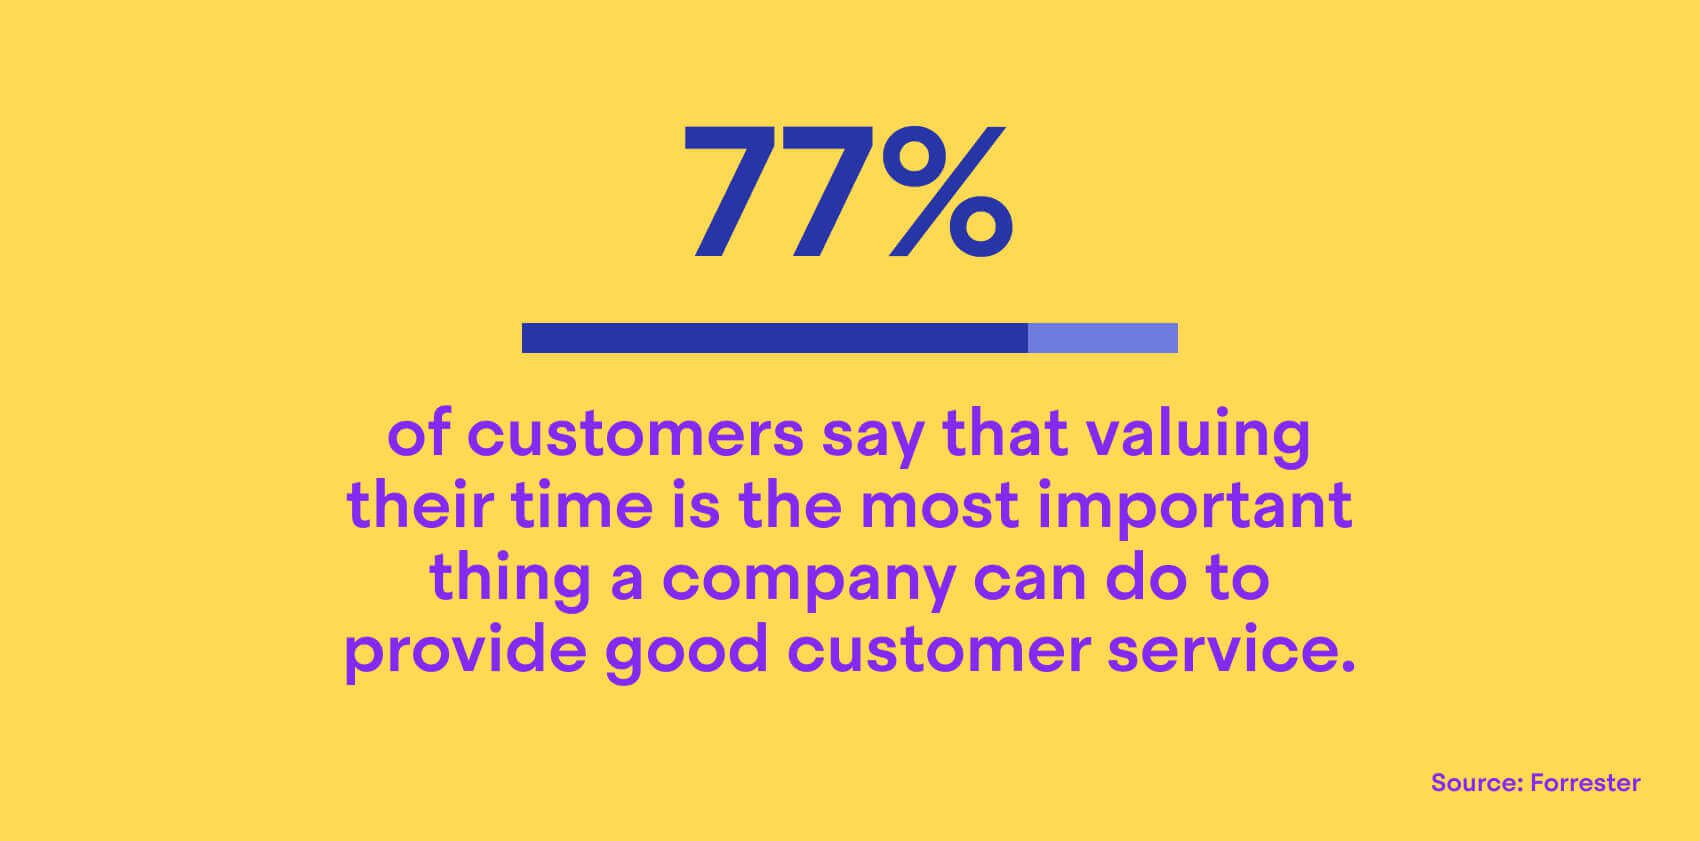 77% of customers say valuing their time is the most important thing a company can do